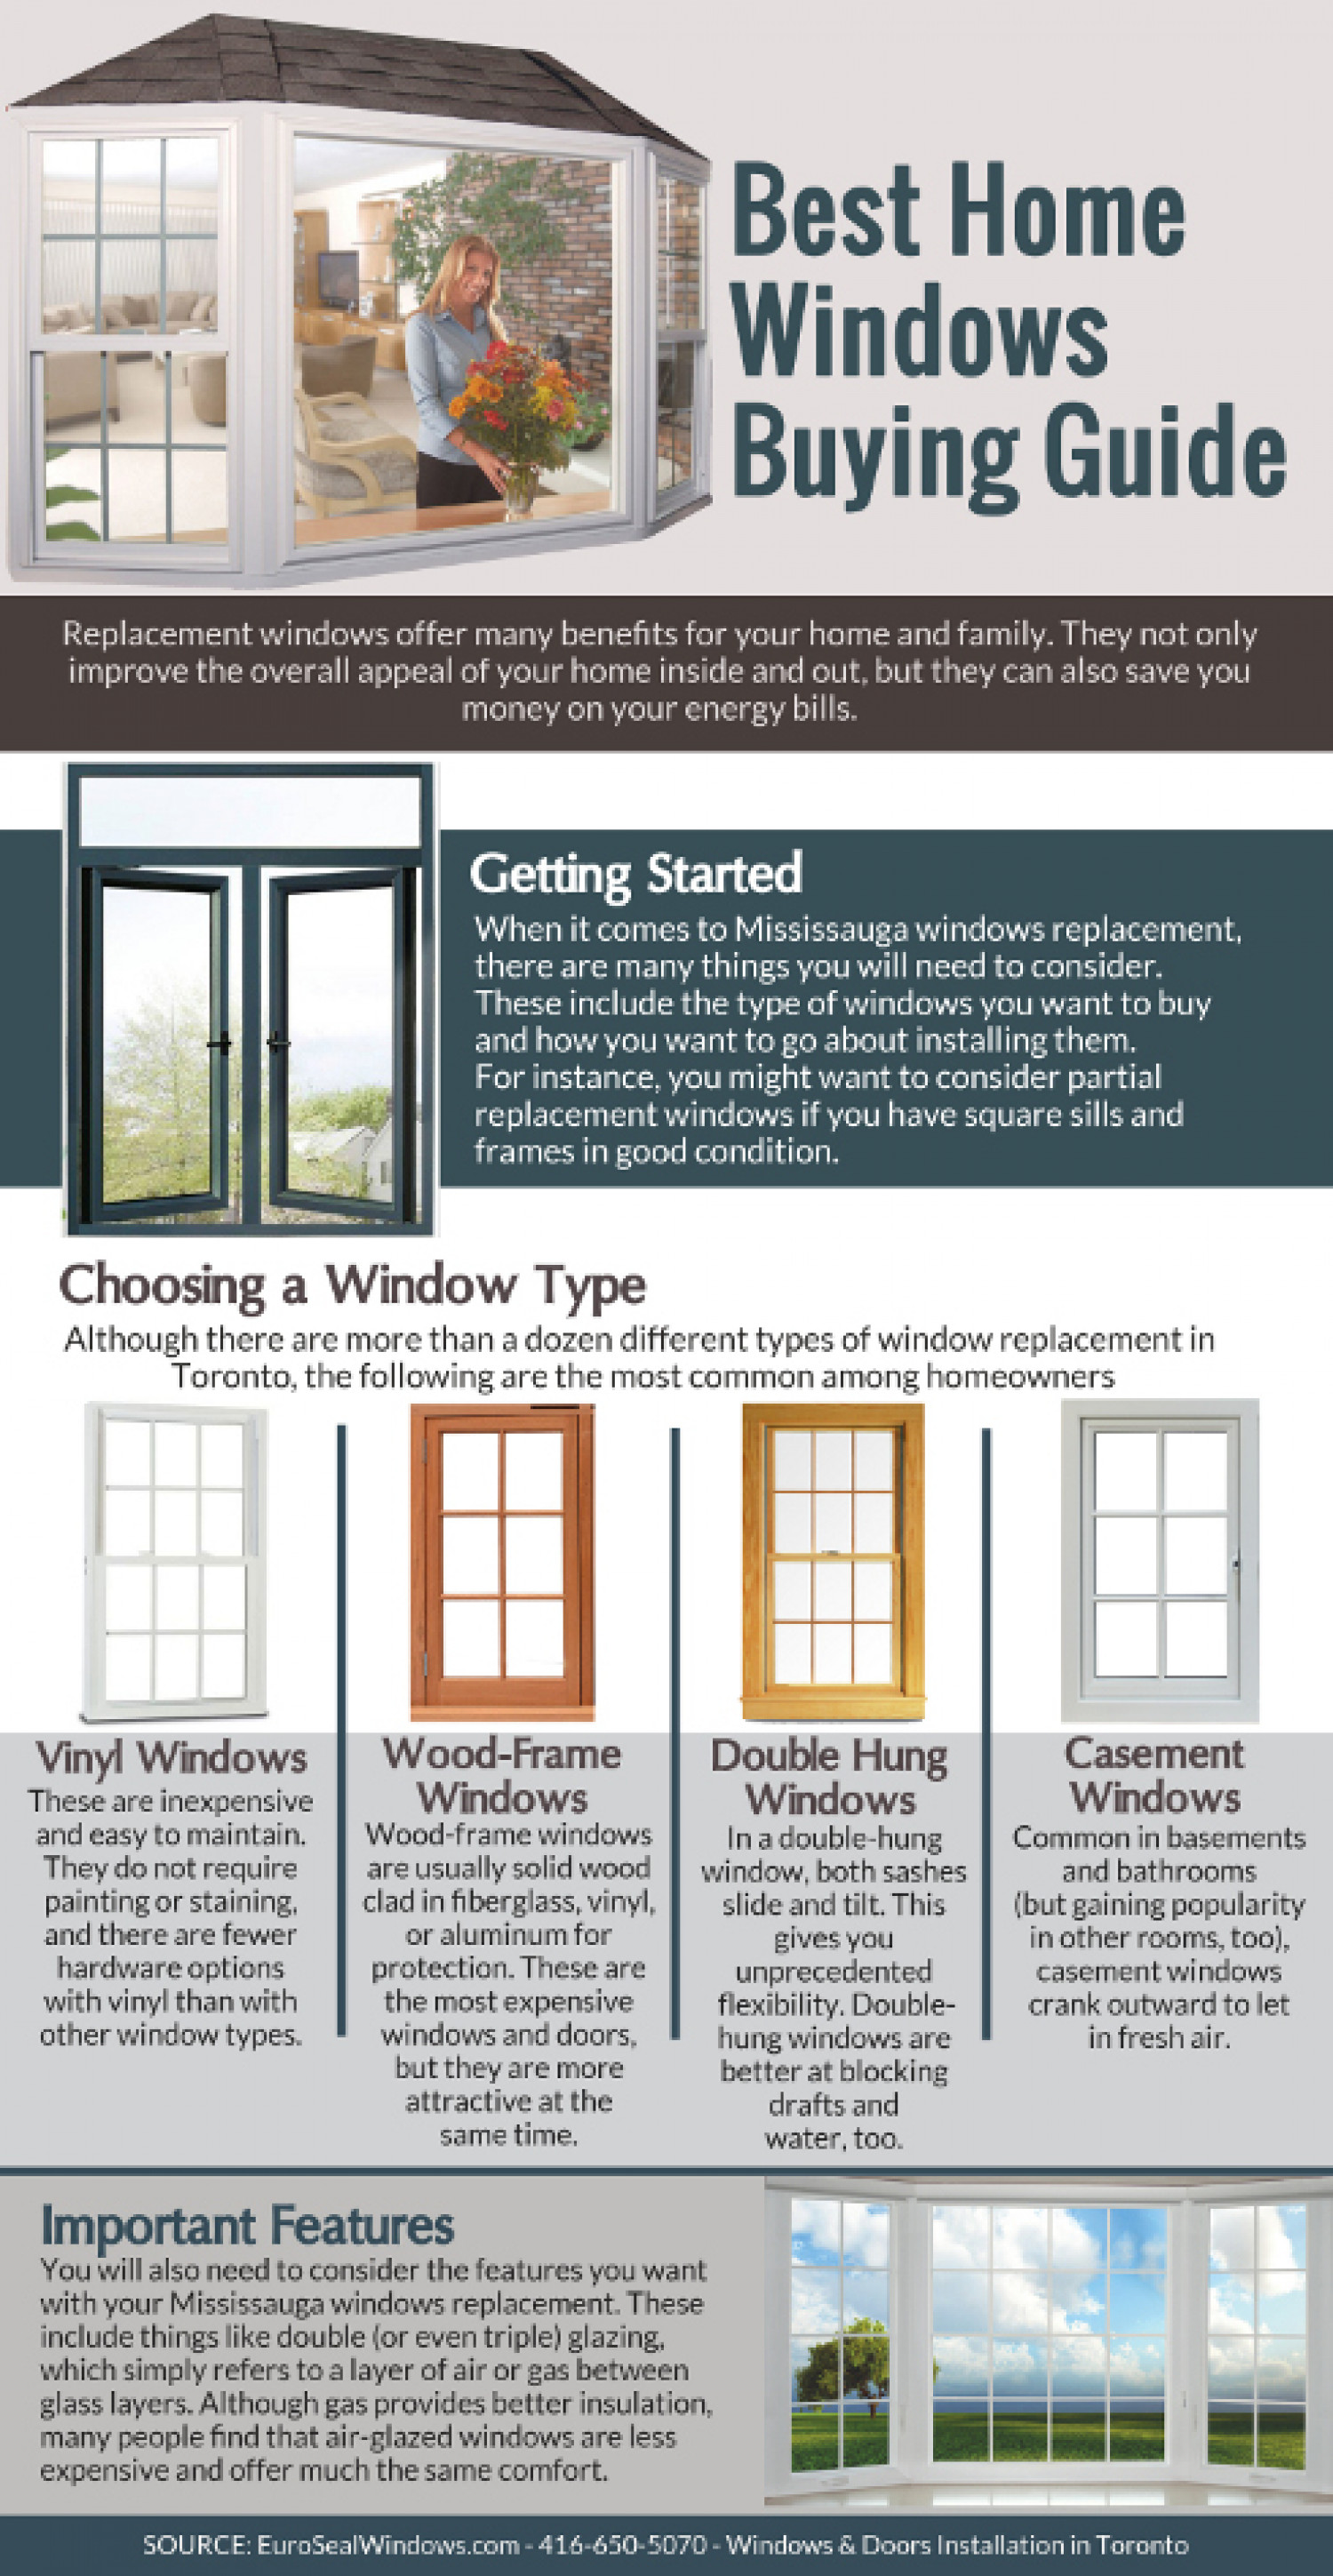 Best Home Windows Buying Guide